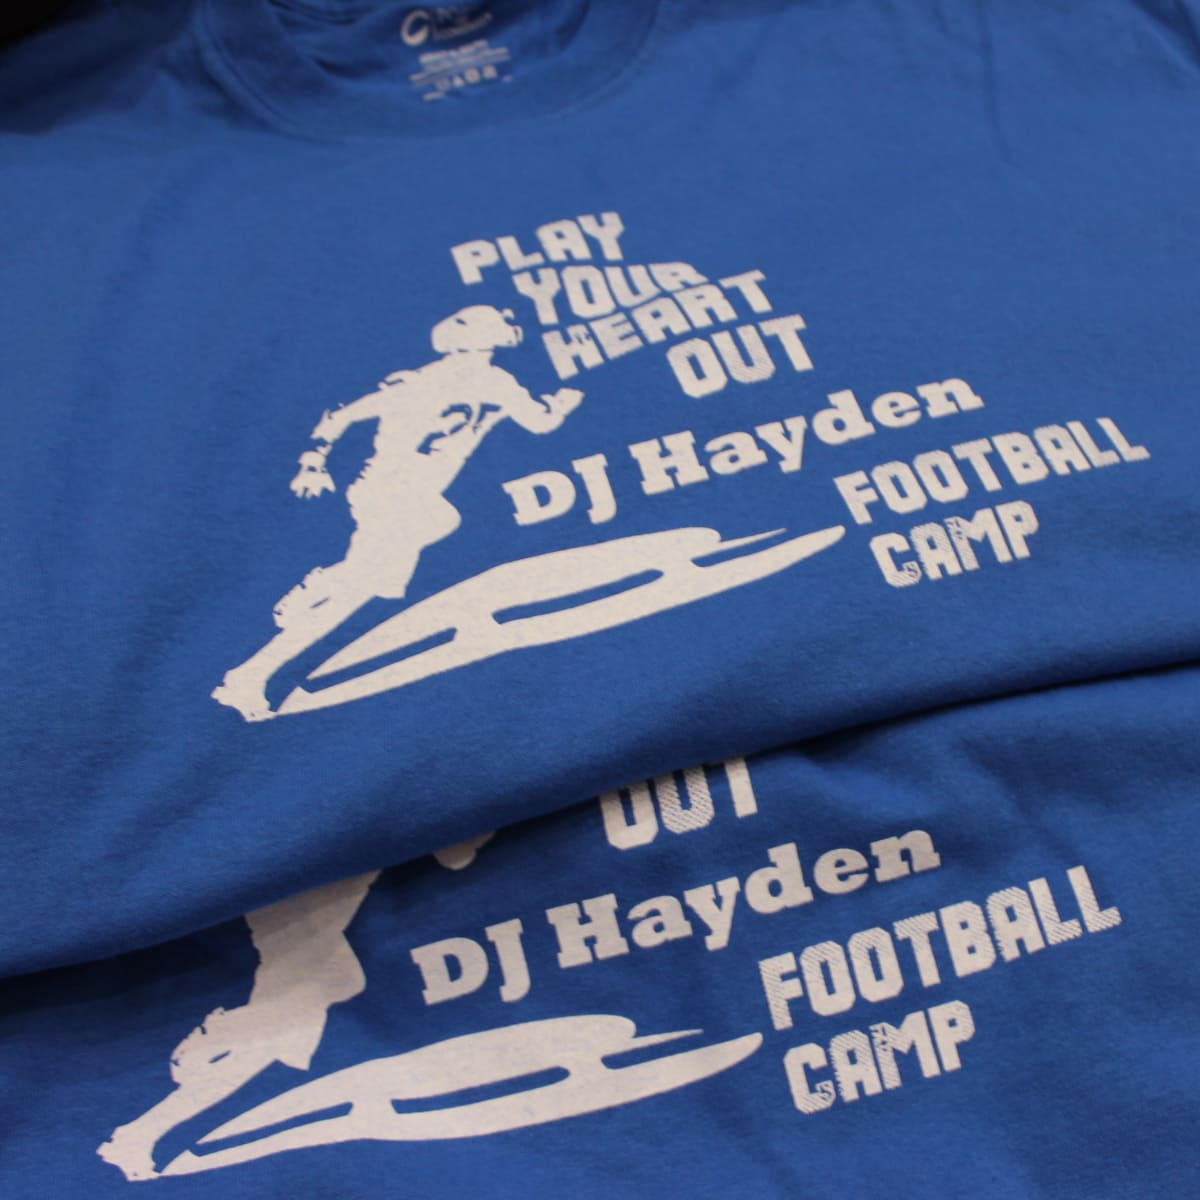 DJ Hayden Football Camp 2015 shirts